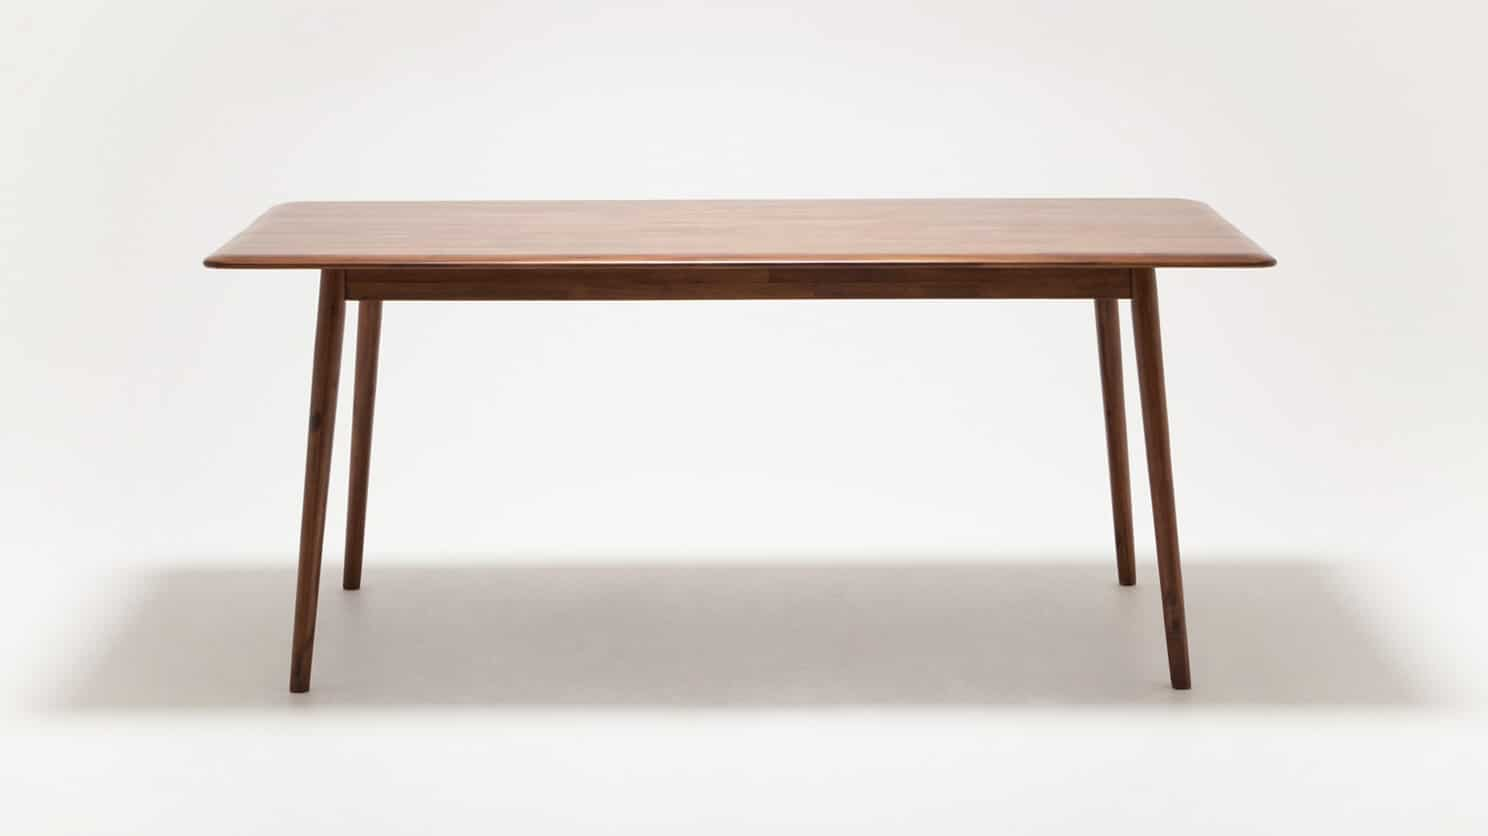 7110 300 49 1 dining tables kacia dining table front 02 1